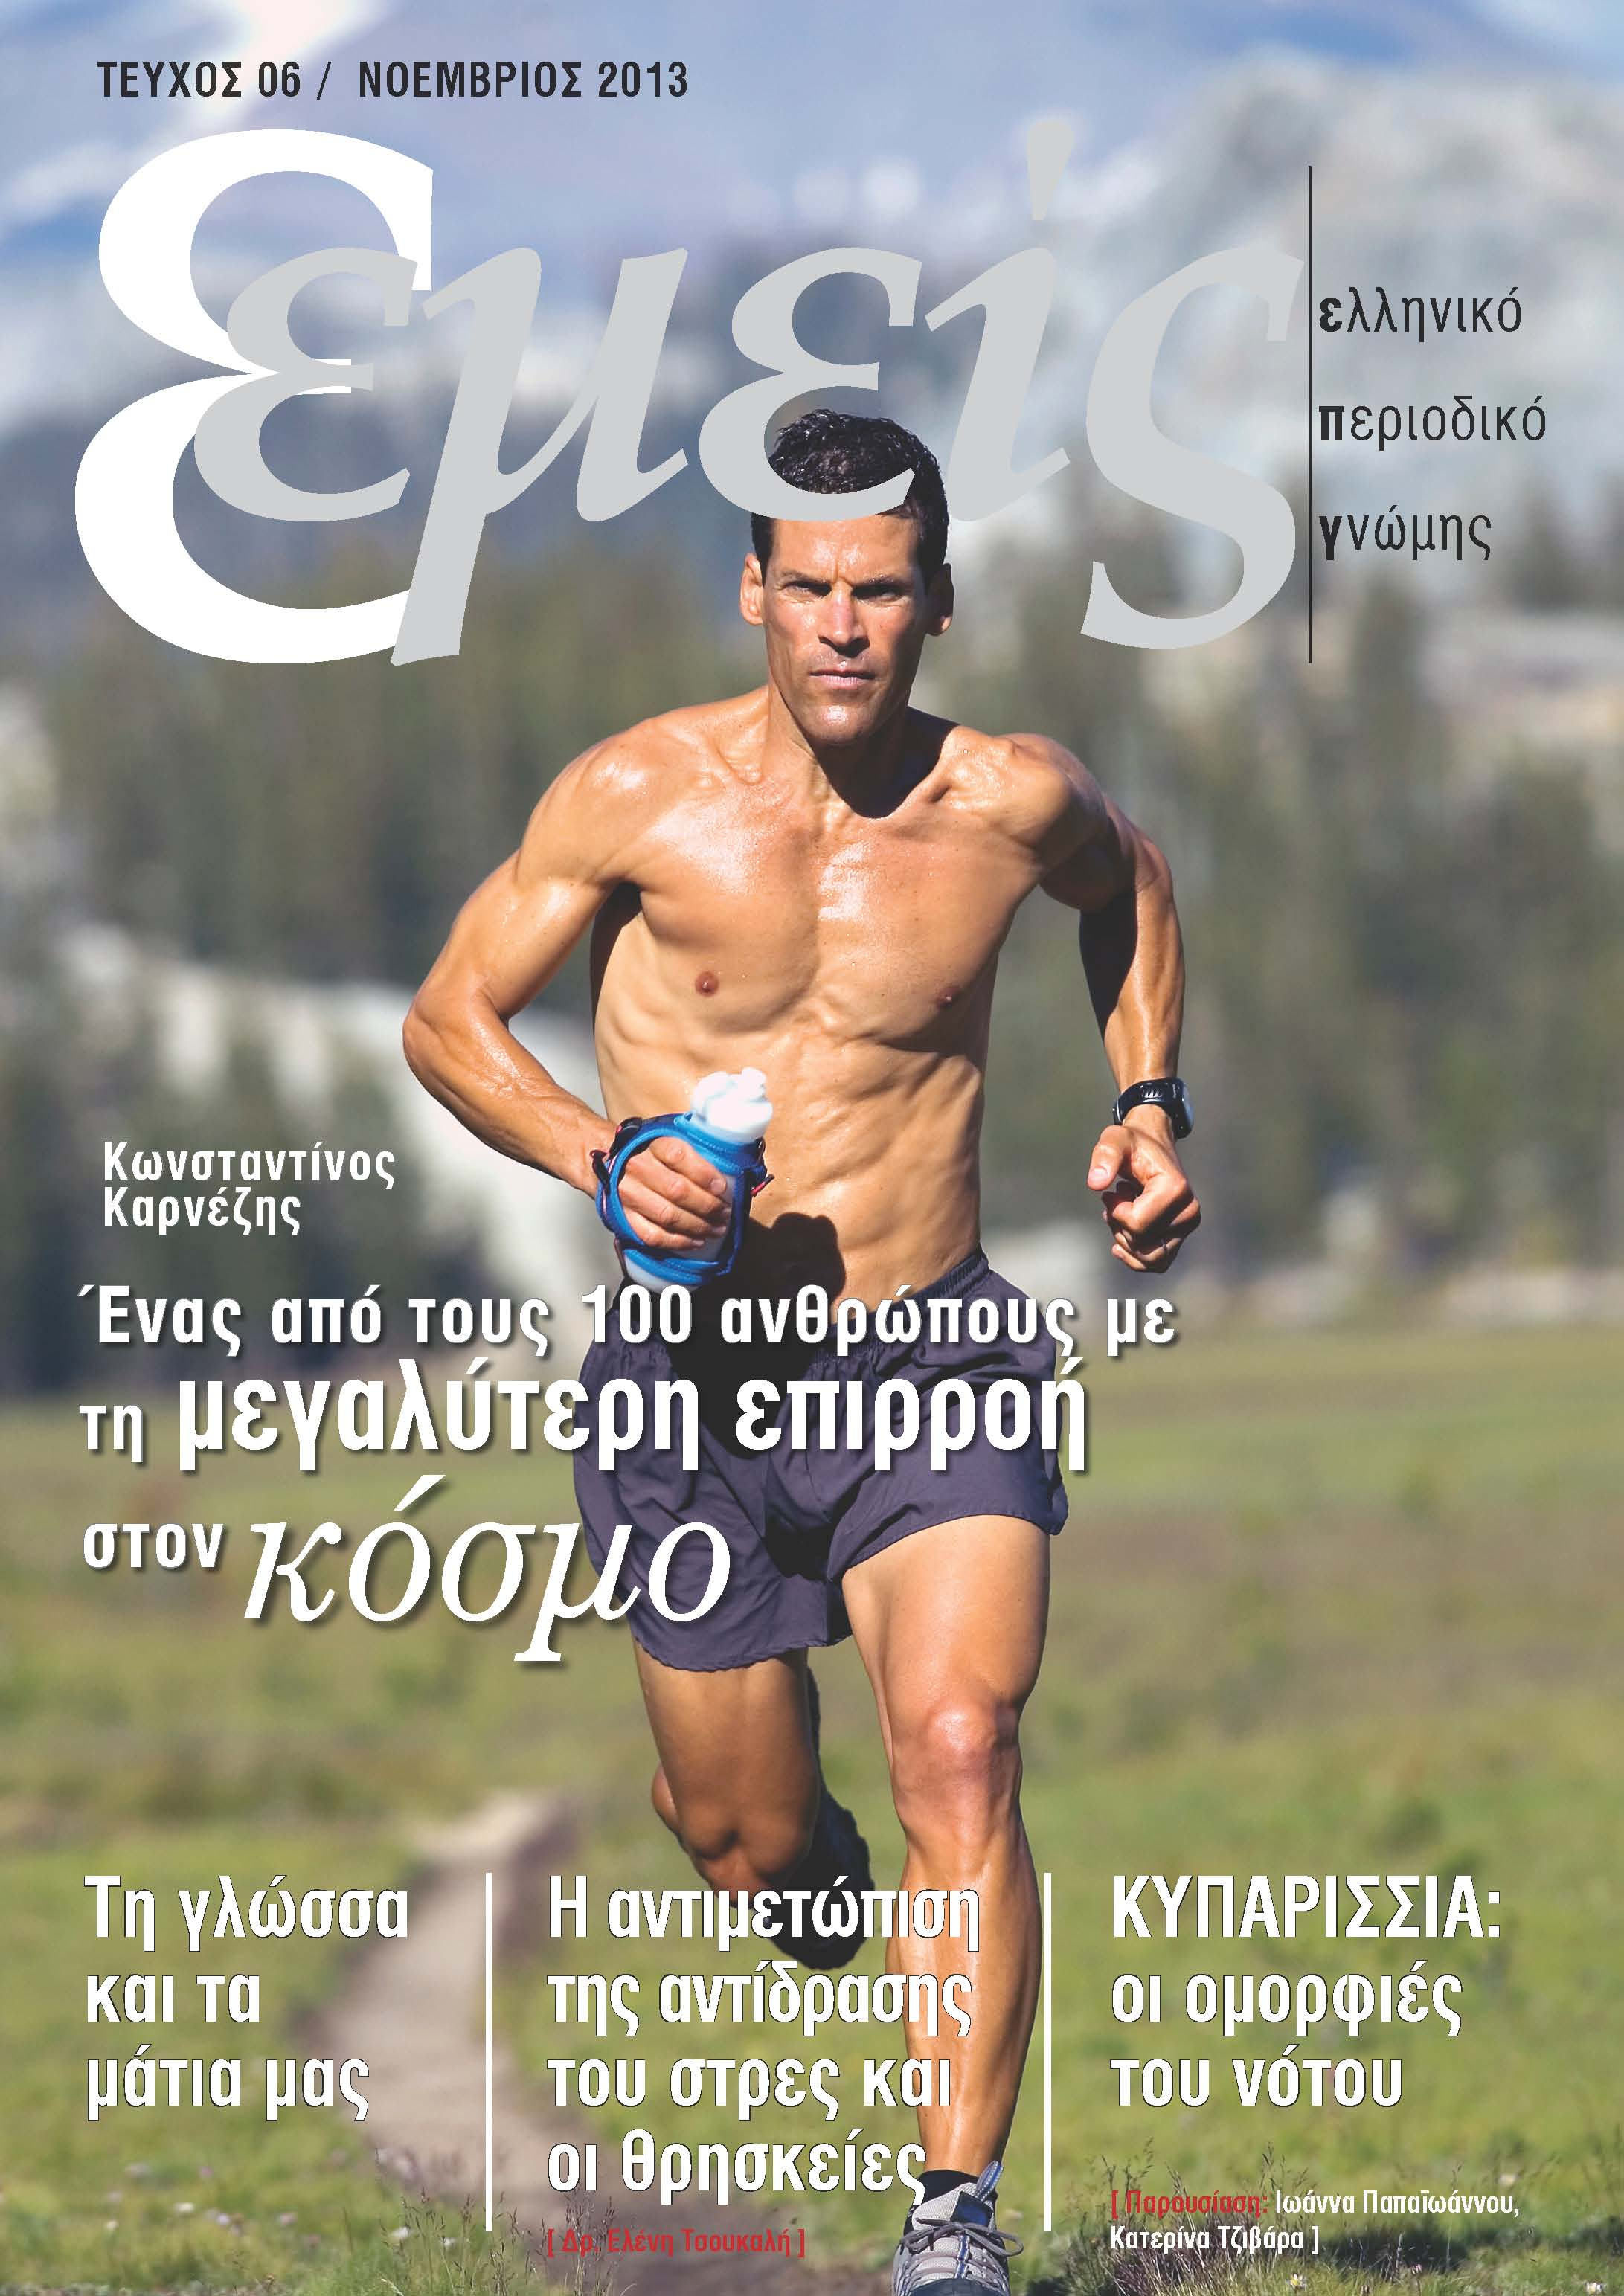 COVER - EMEIS 06